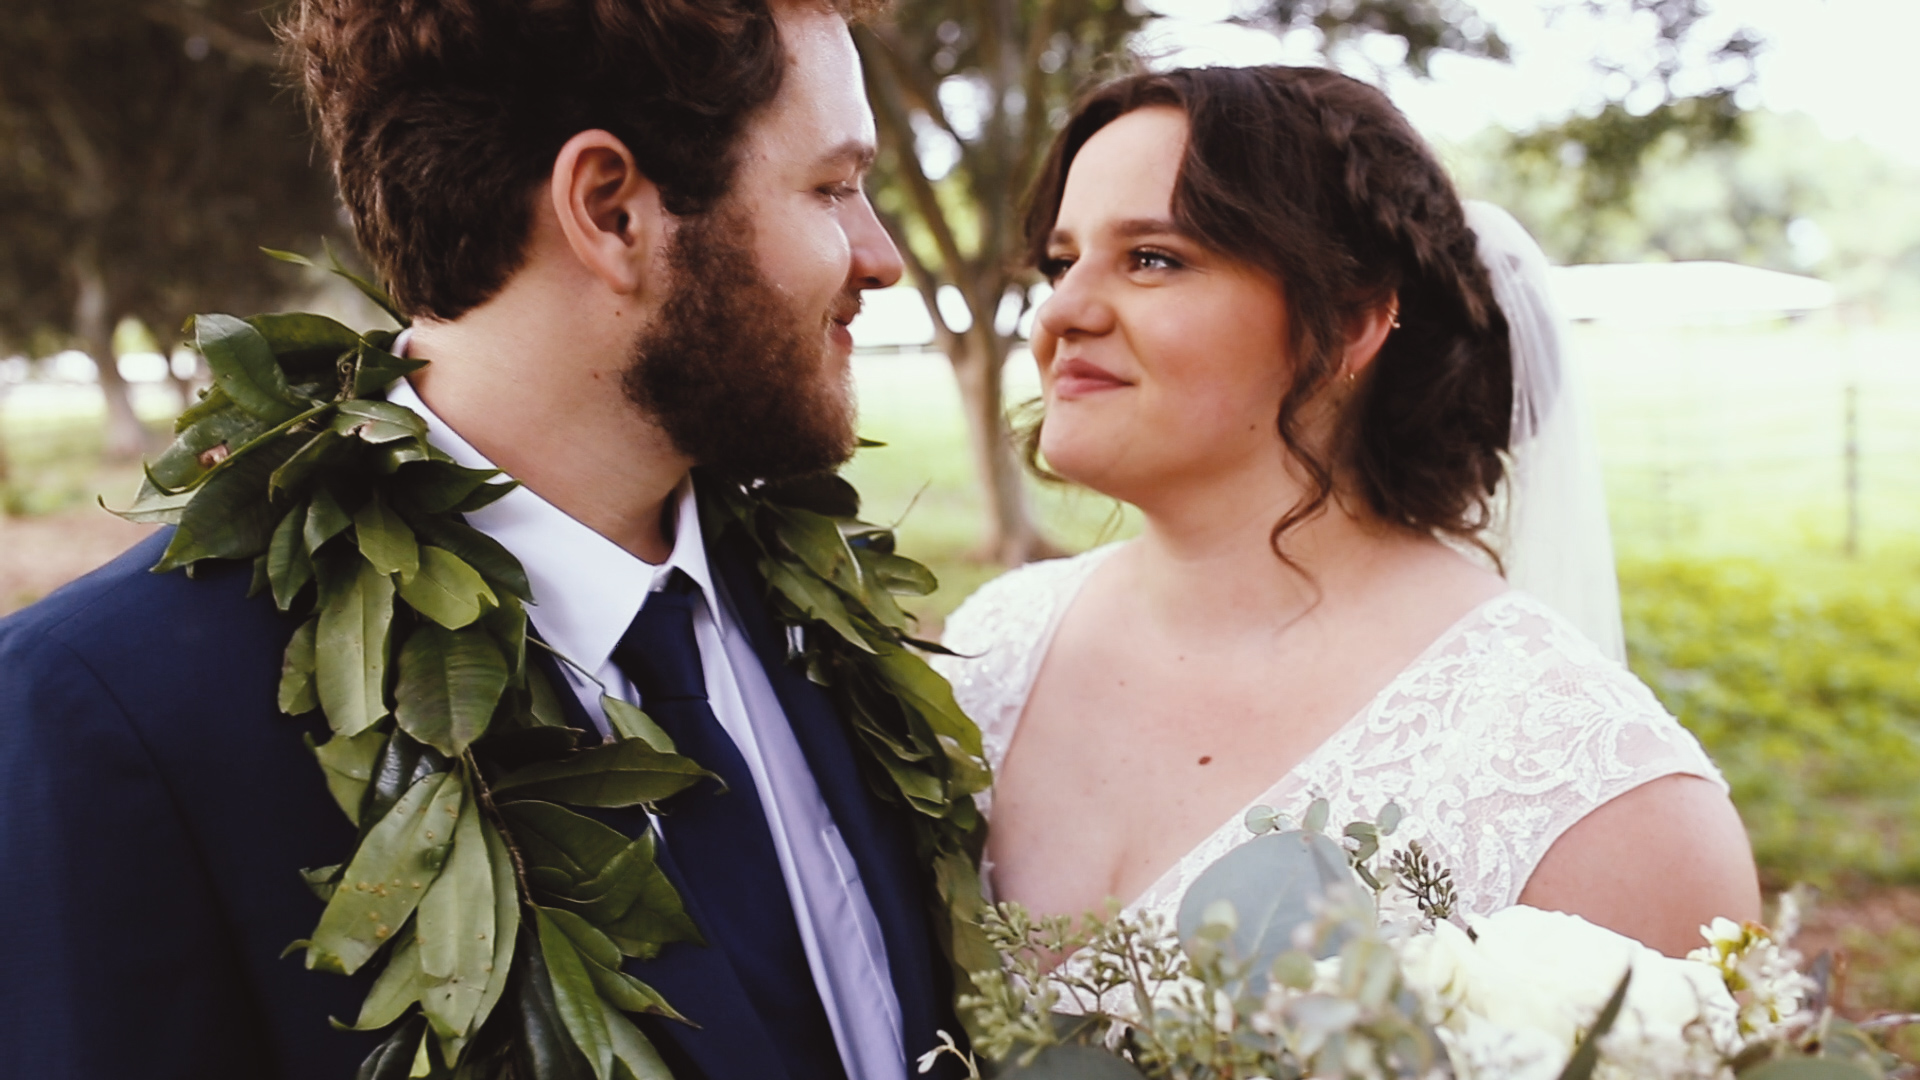 Jake + Sadie | Waimanalo, Hawaii | South Shore Christian Fellowship